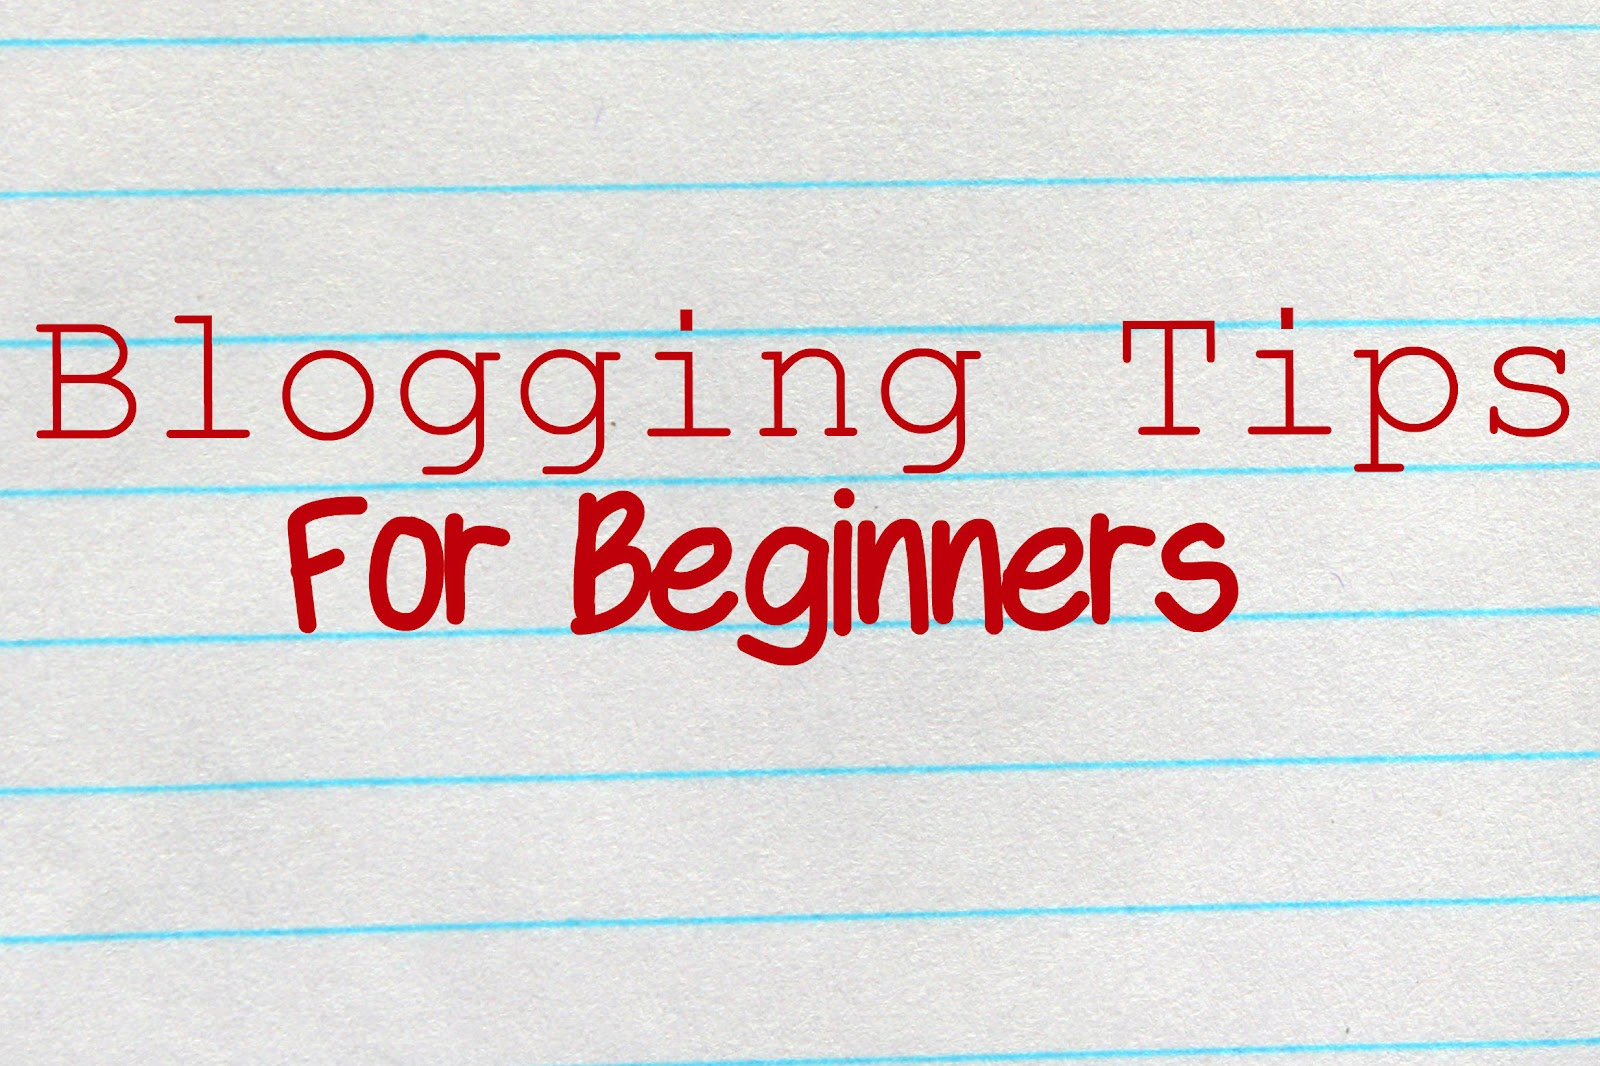 Blogging Ideas For Beginners